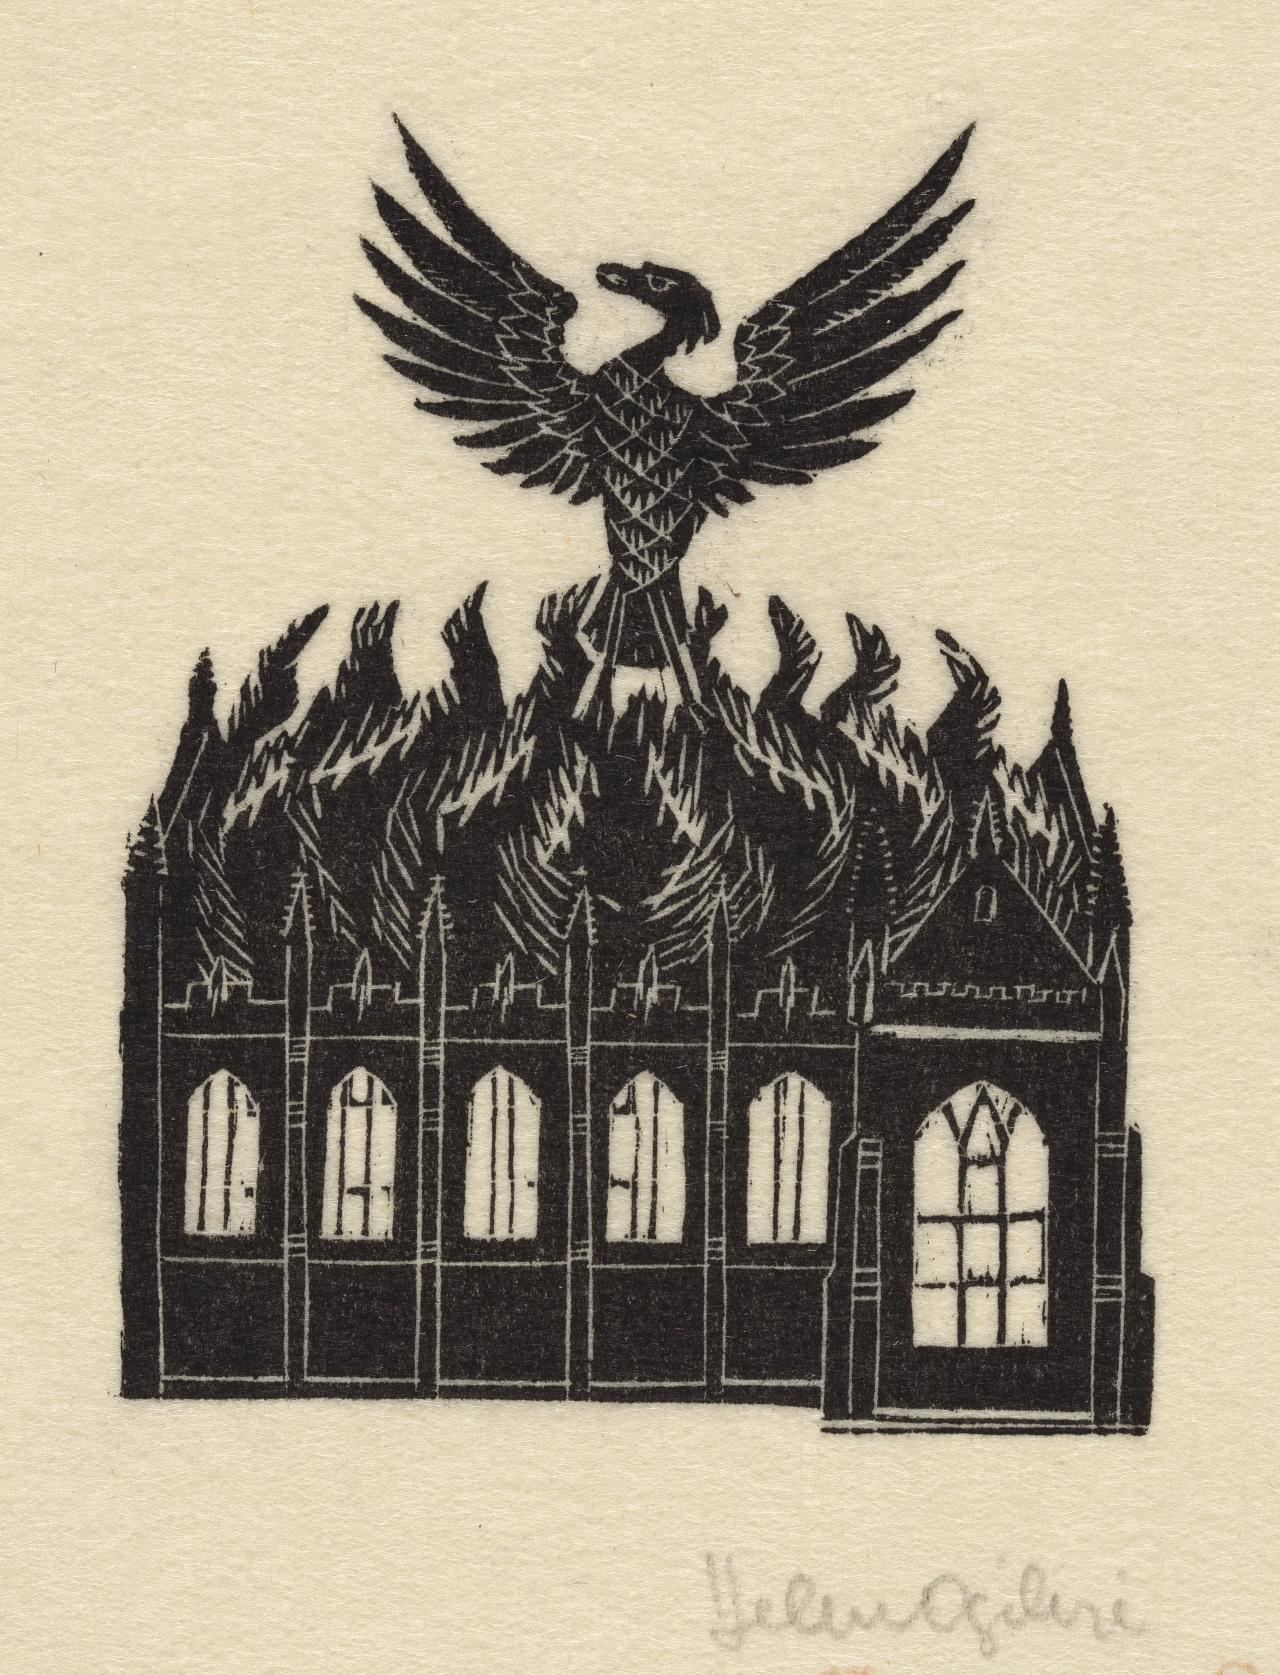 (Eagle rising from flames of burning building)